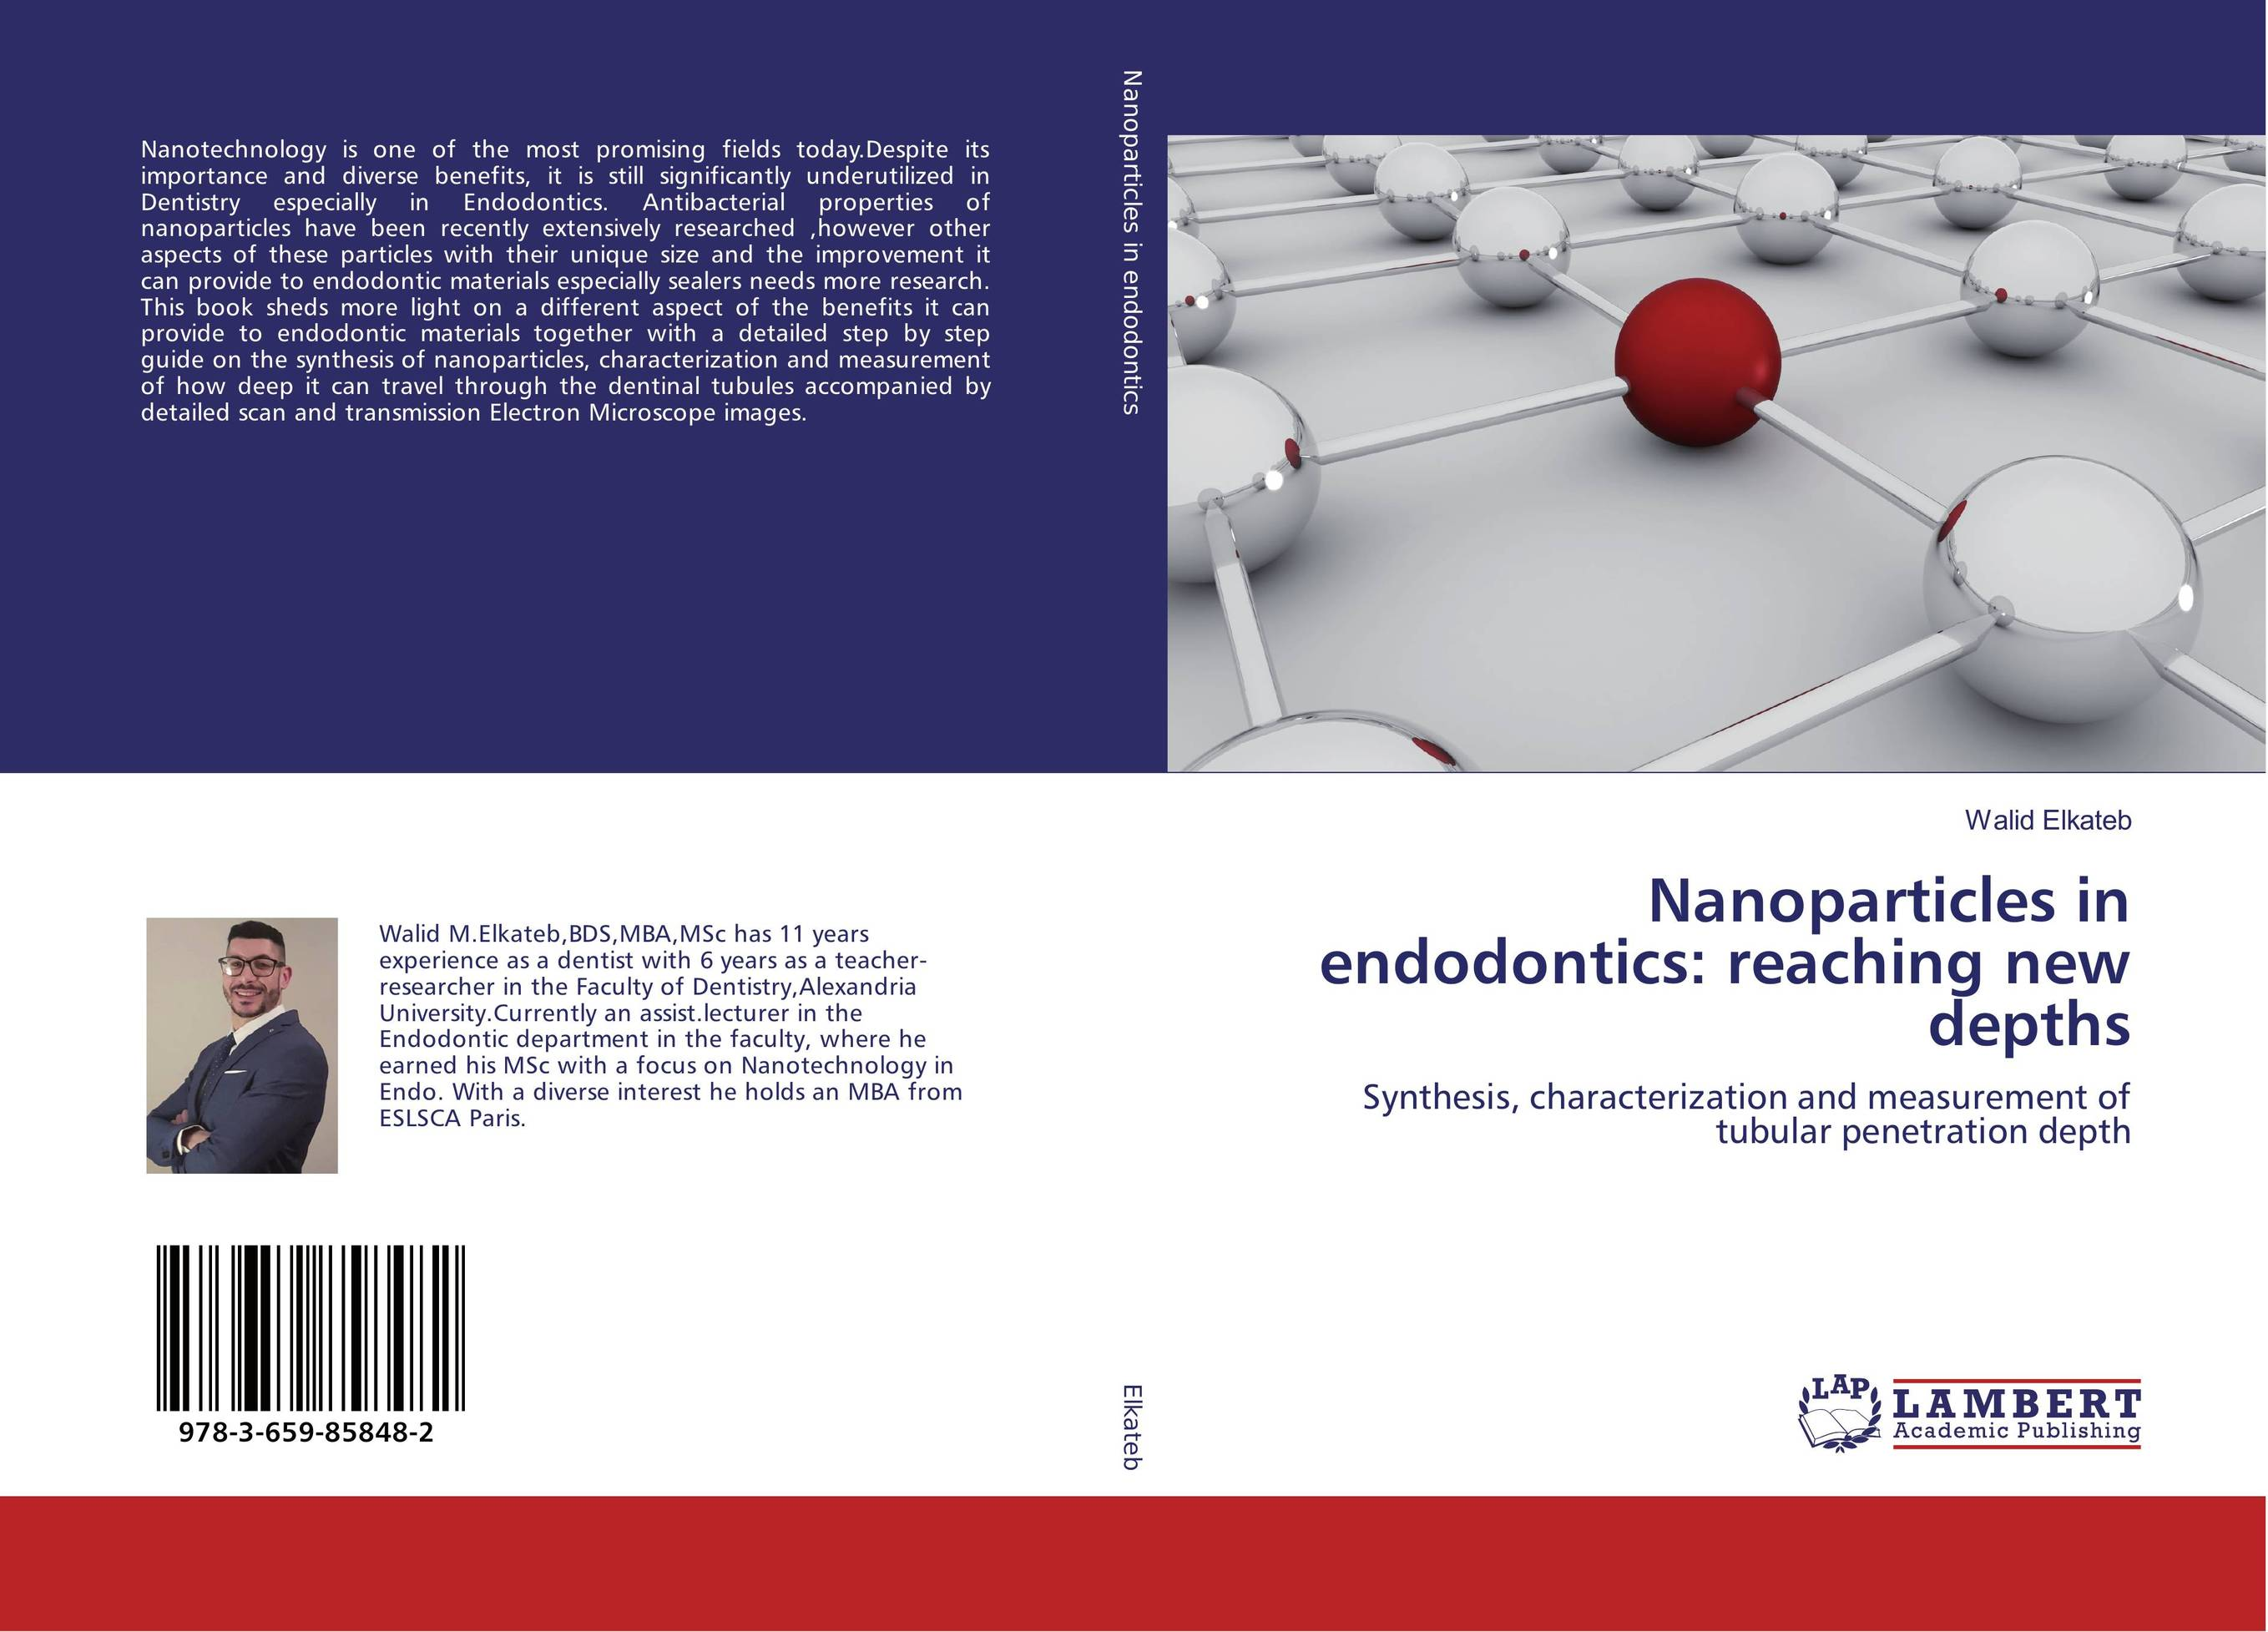 Nanoparticles in endodontics: reaching new depths woodwork a step by step photographic guide to successful woodworking